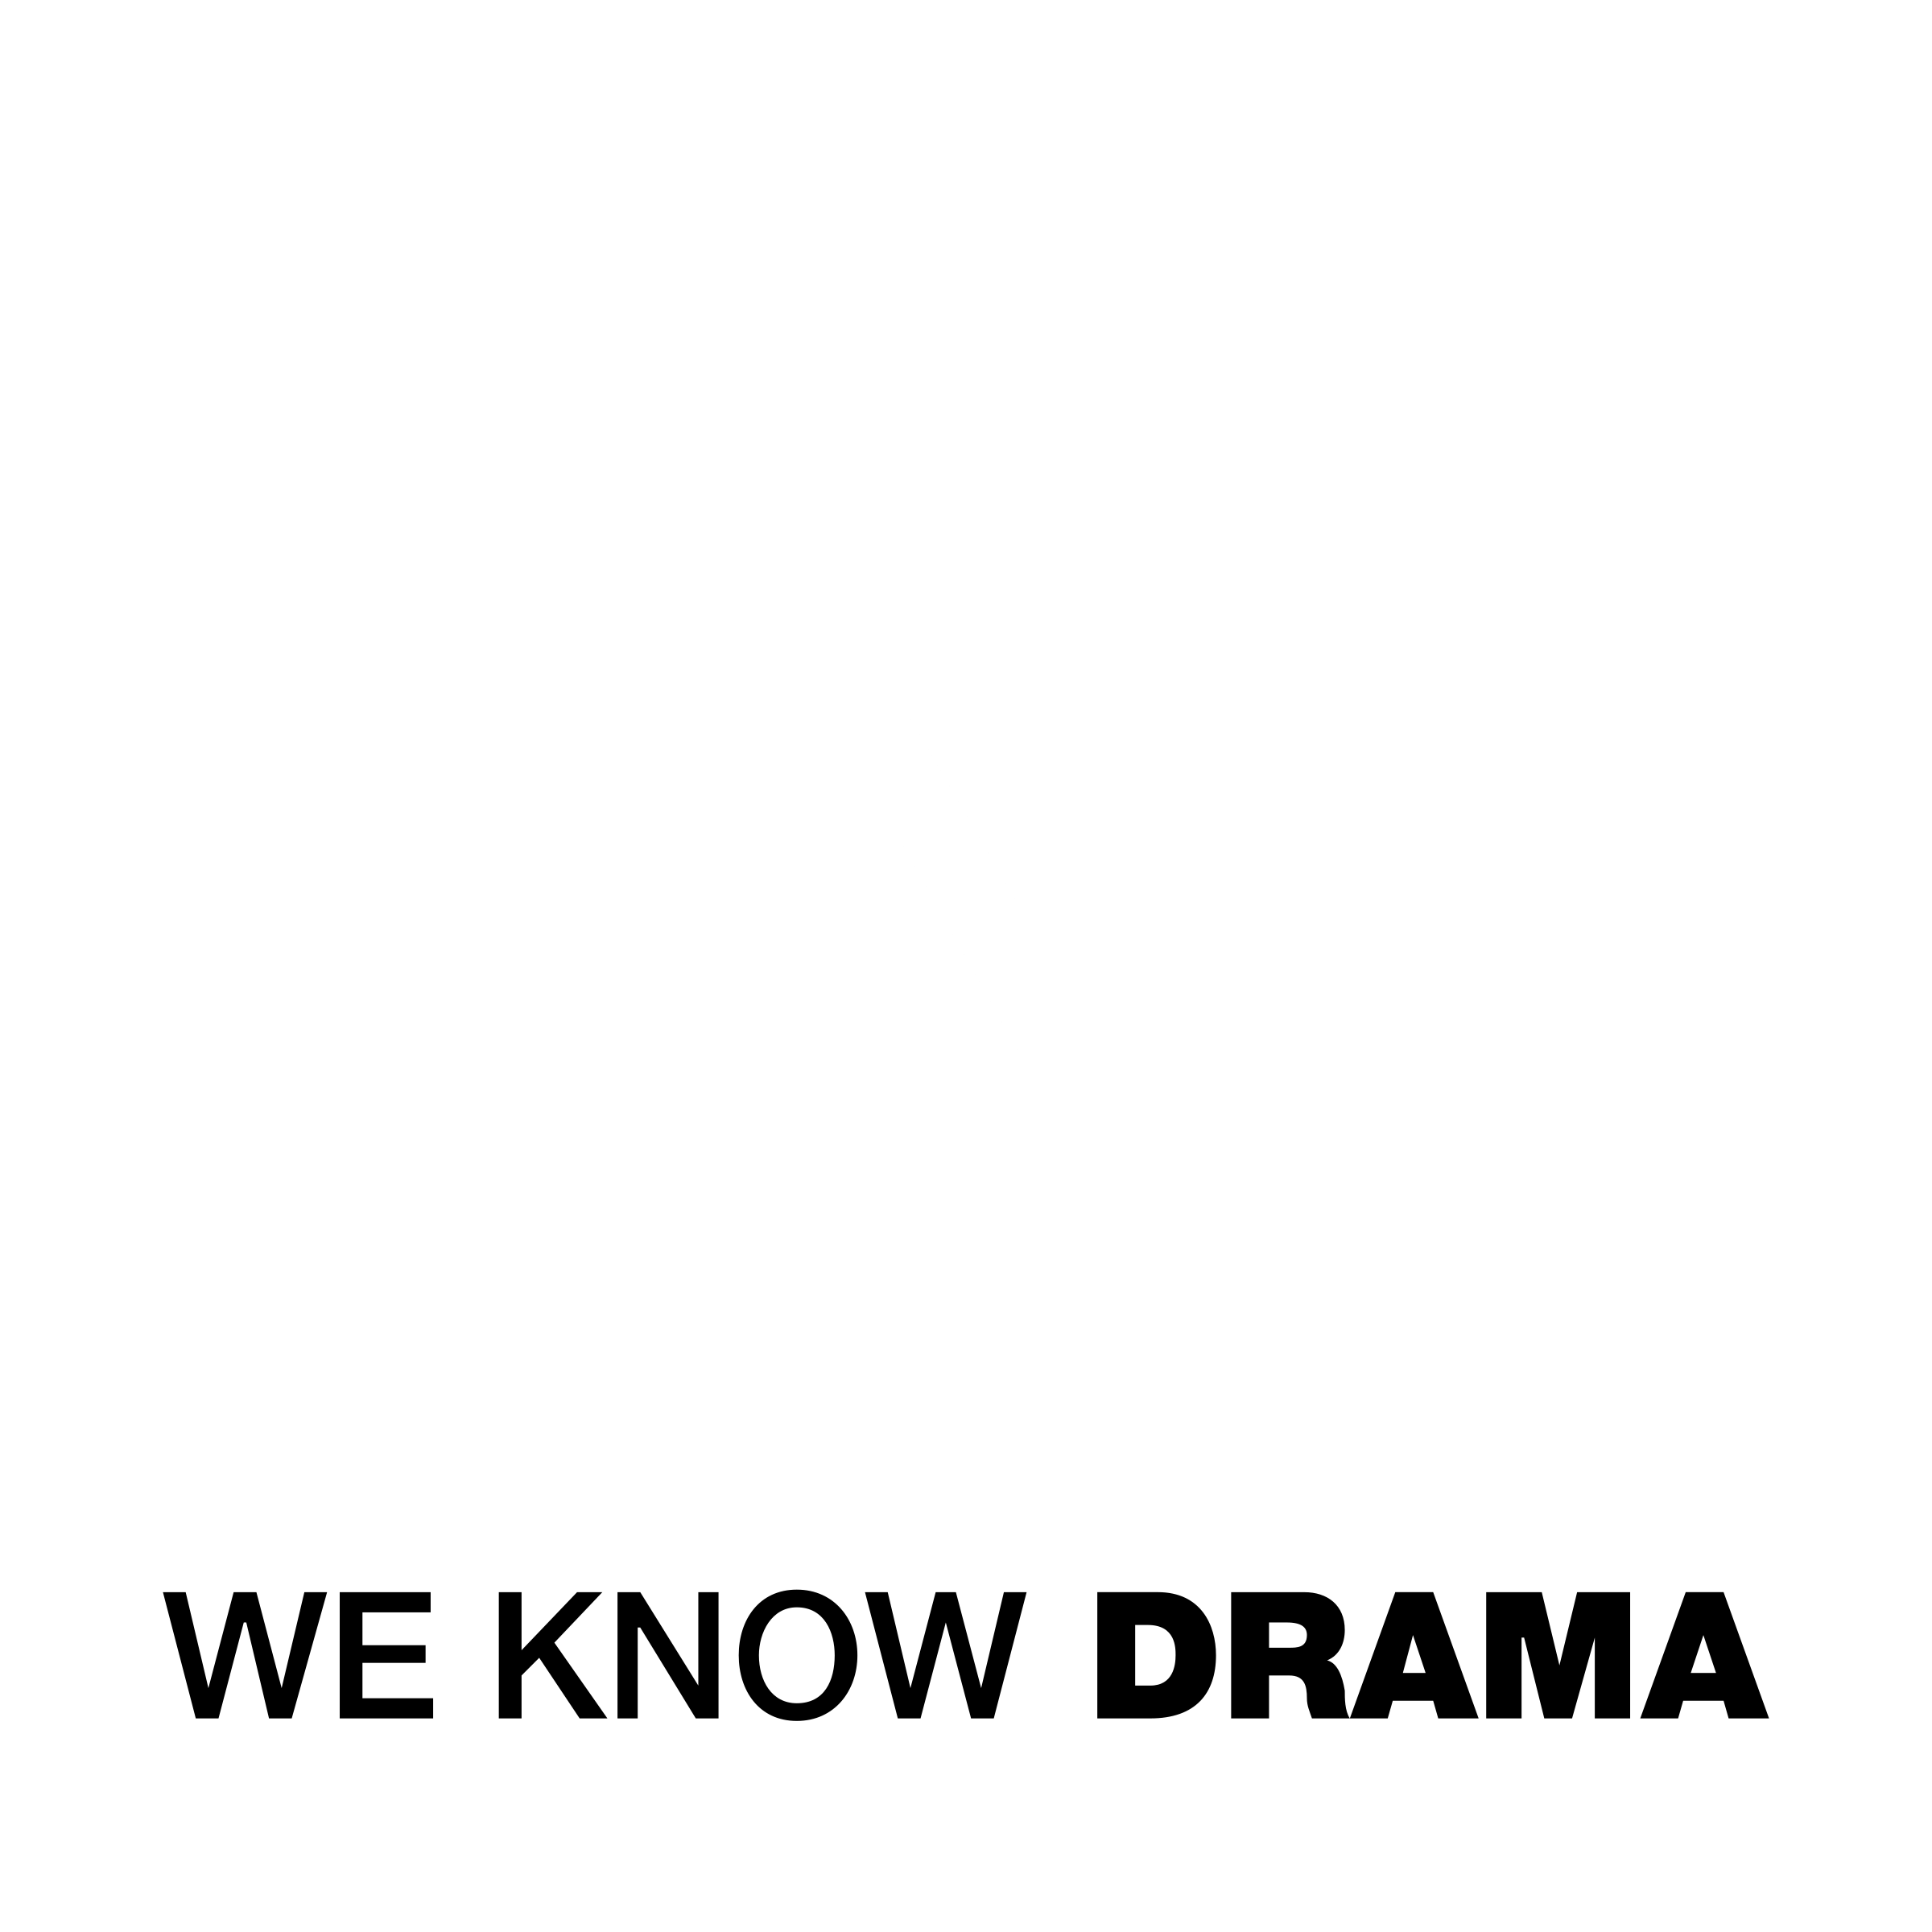 TNT Logo PNG Transparent & SVG Vector - Freebie Supply